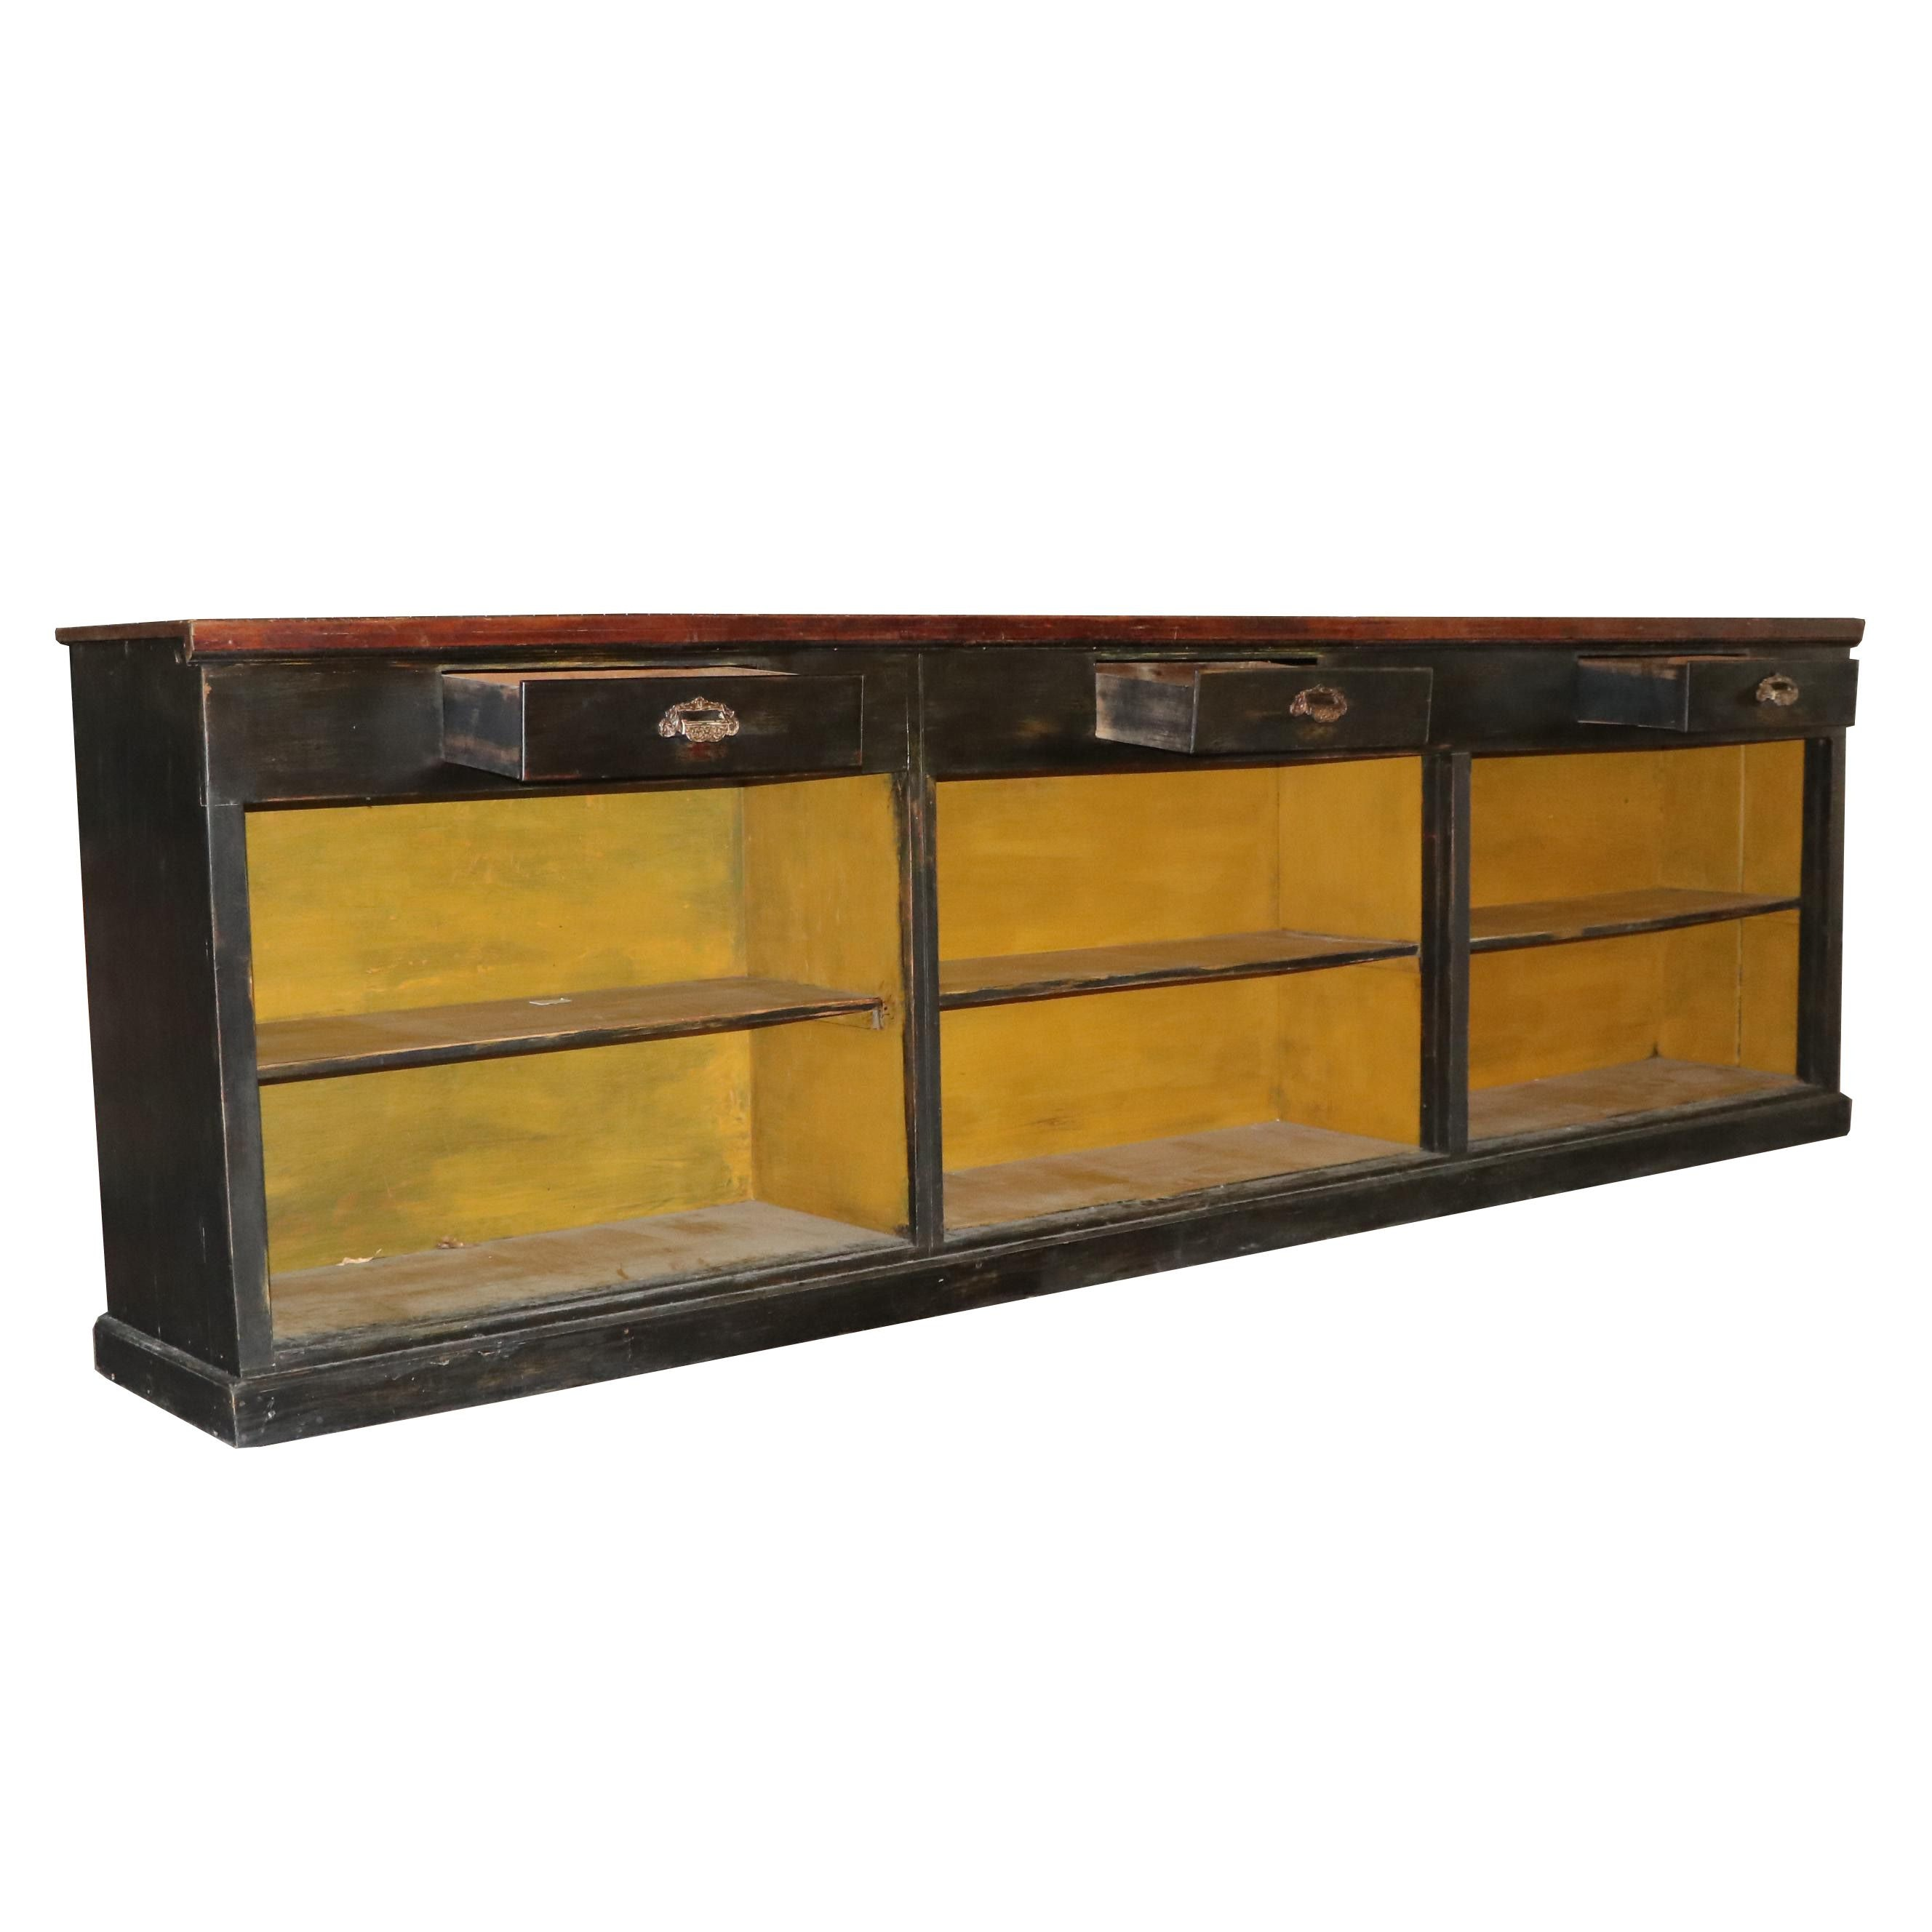 Painted Wood Credenza, Mid/Late 20th Century